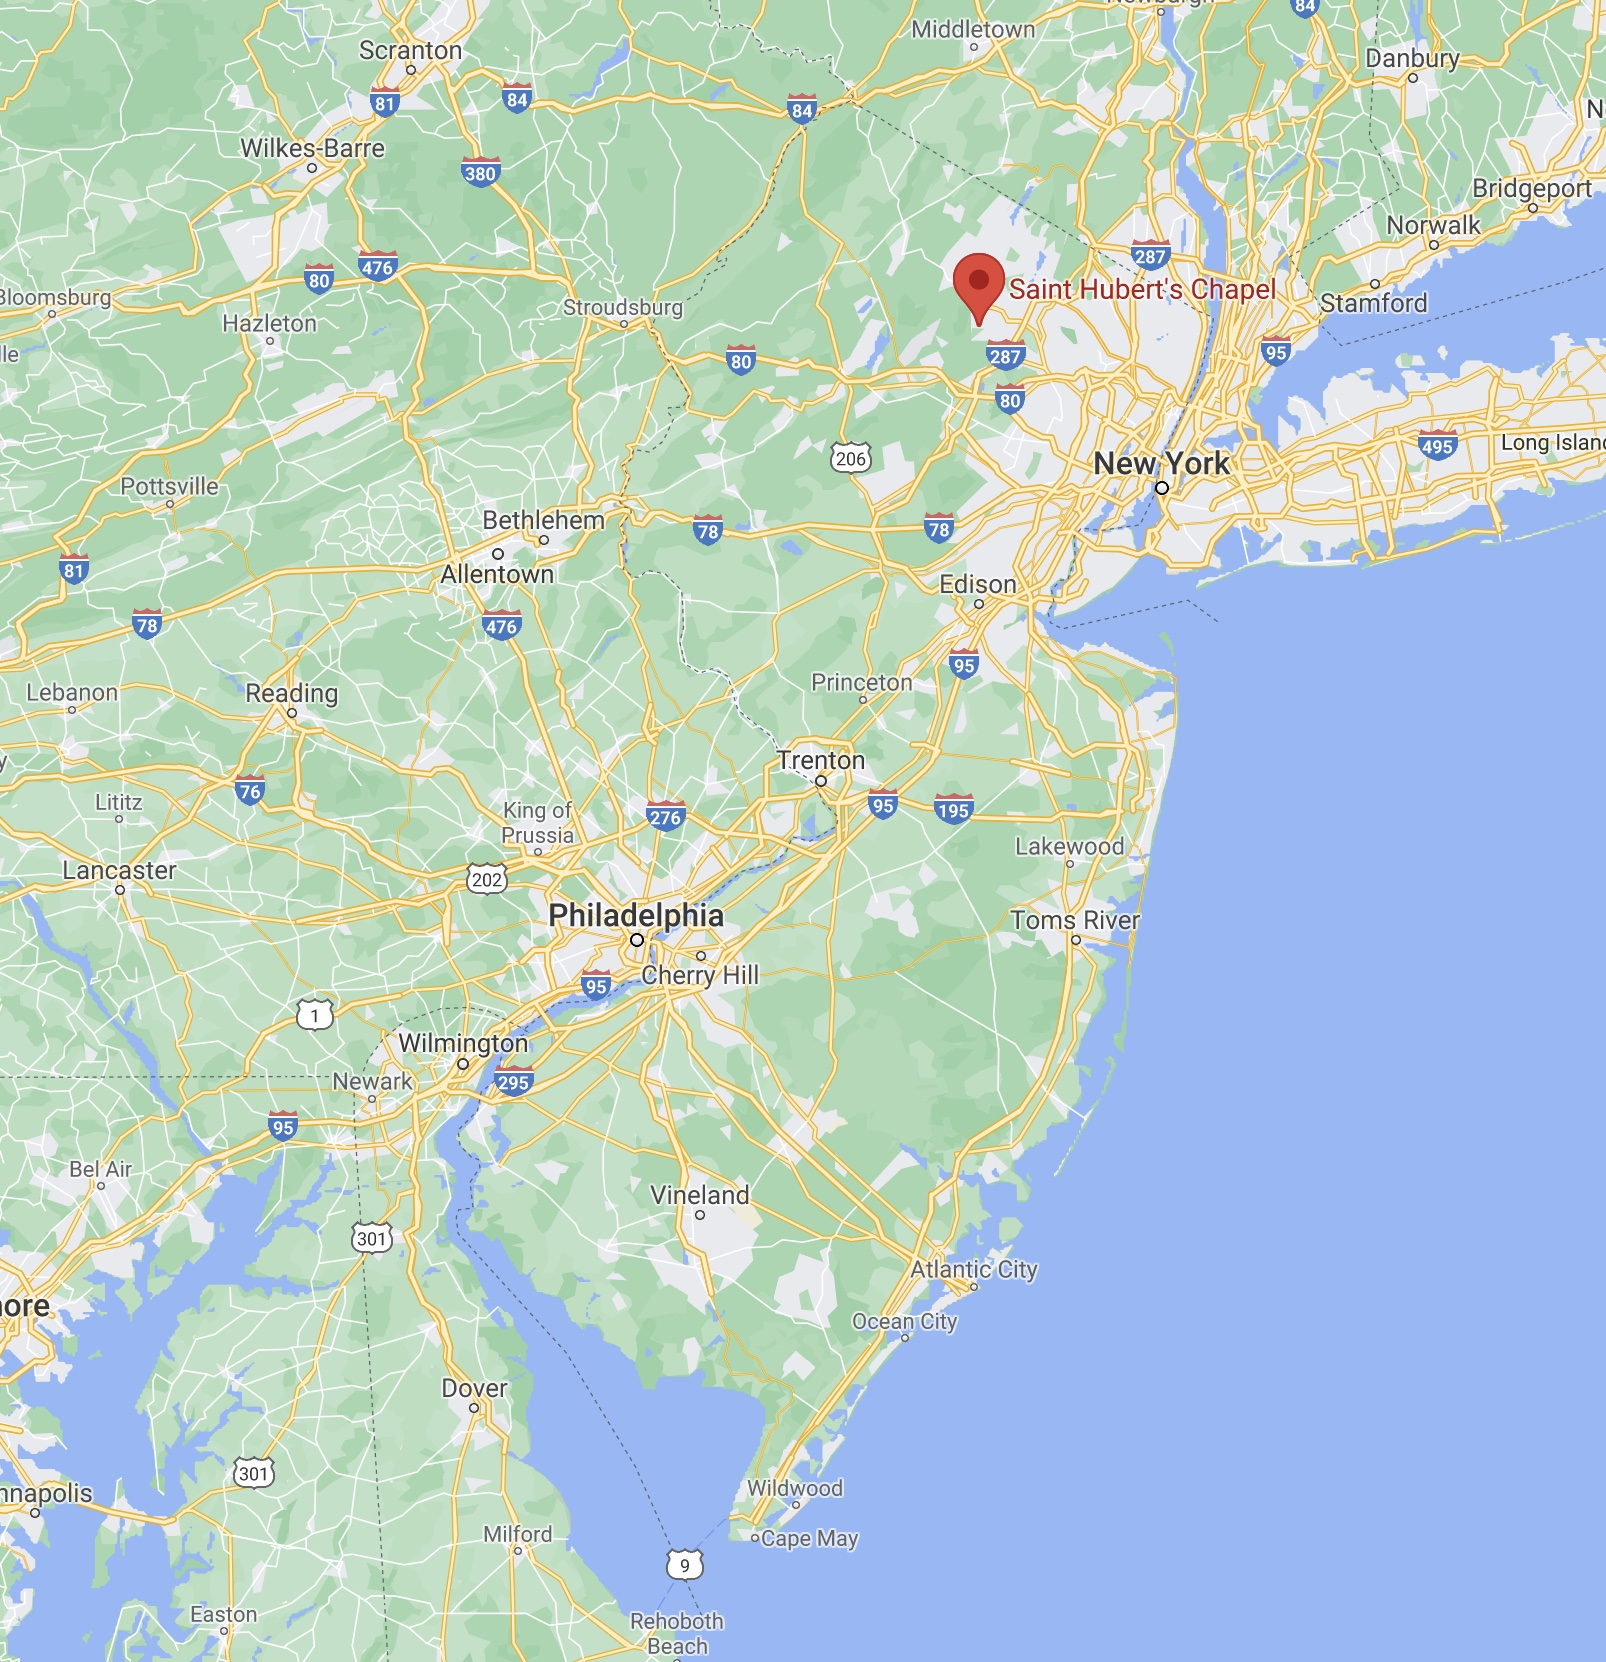 Map of New Jersey with red pin in location of Saint Hubert's Chapel.